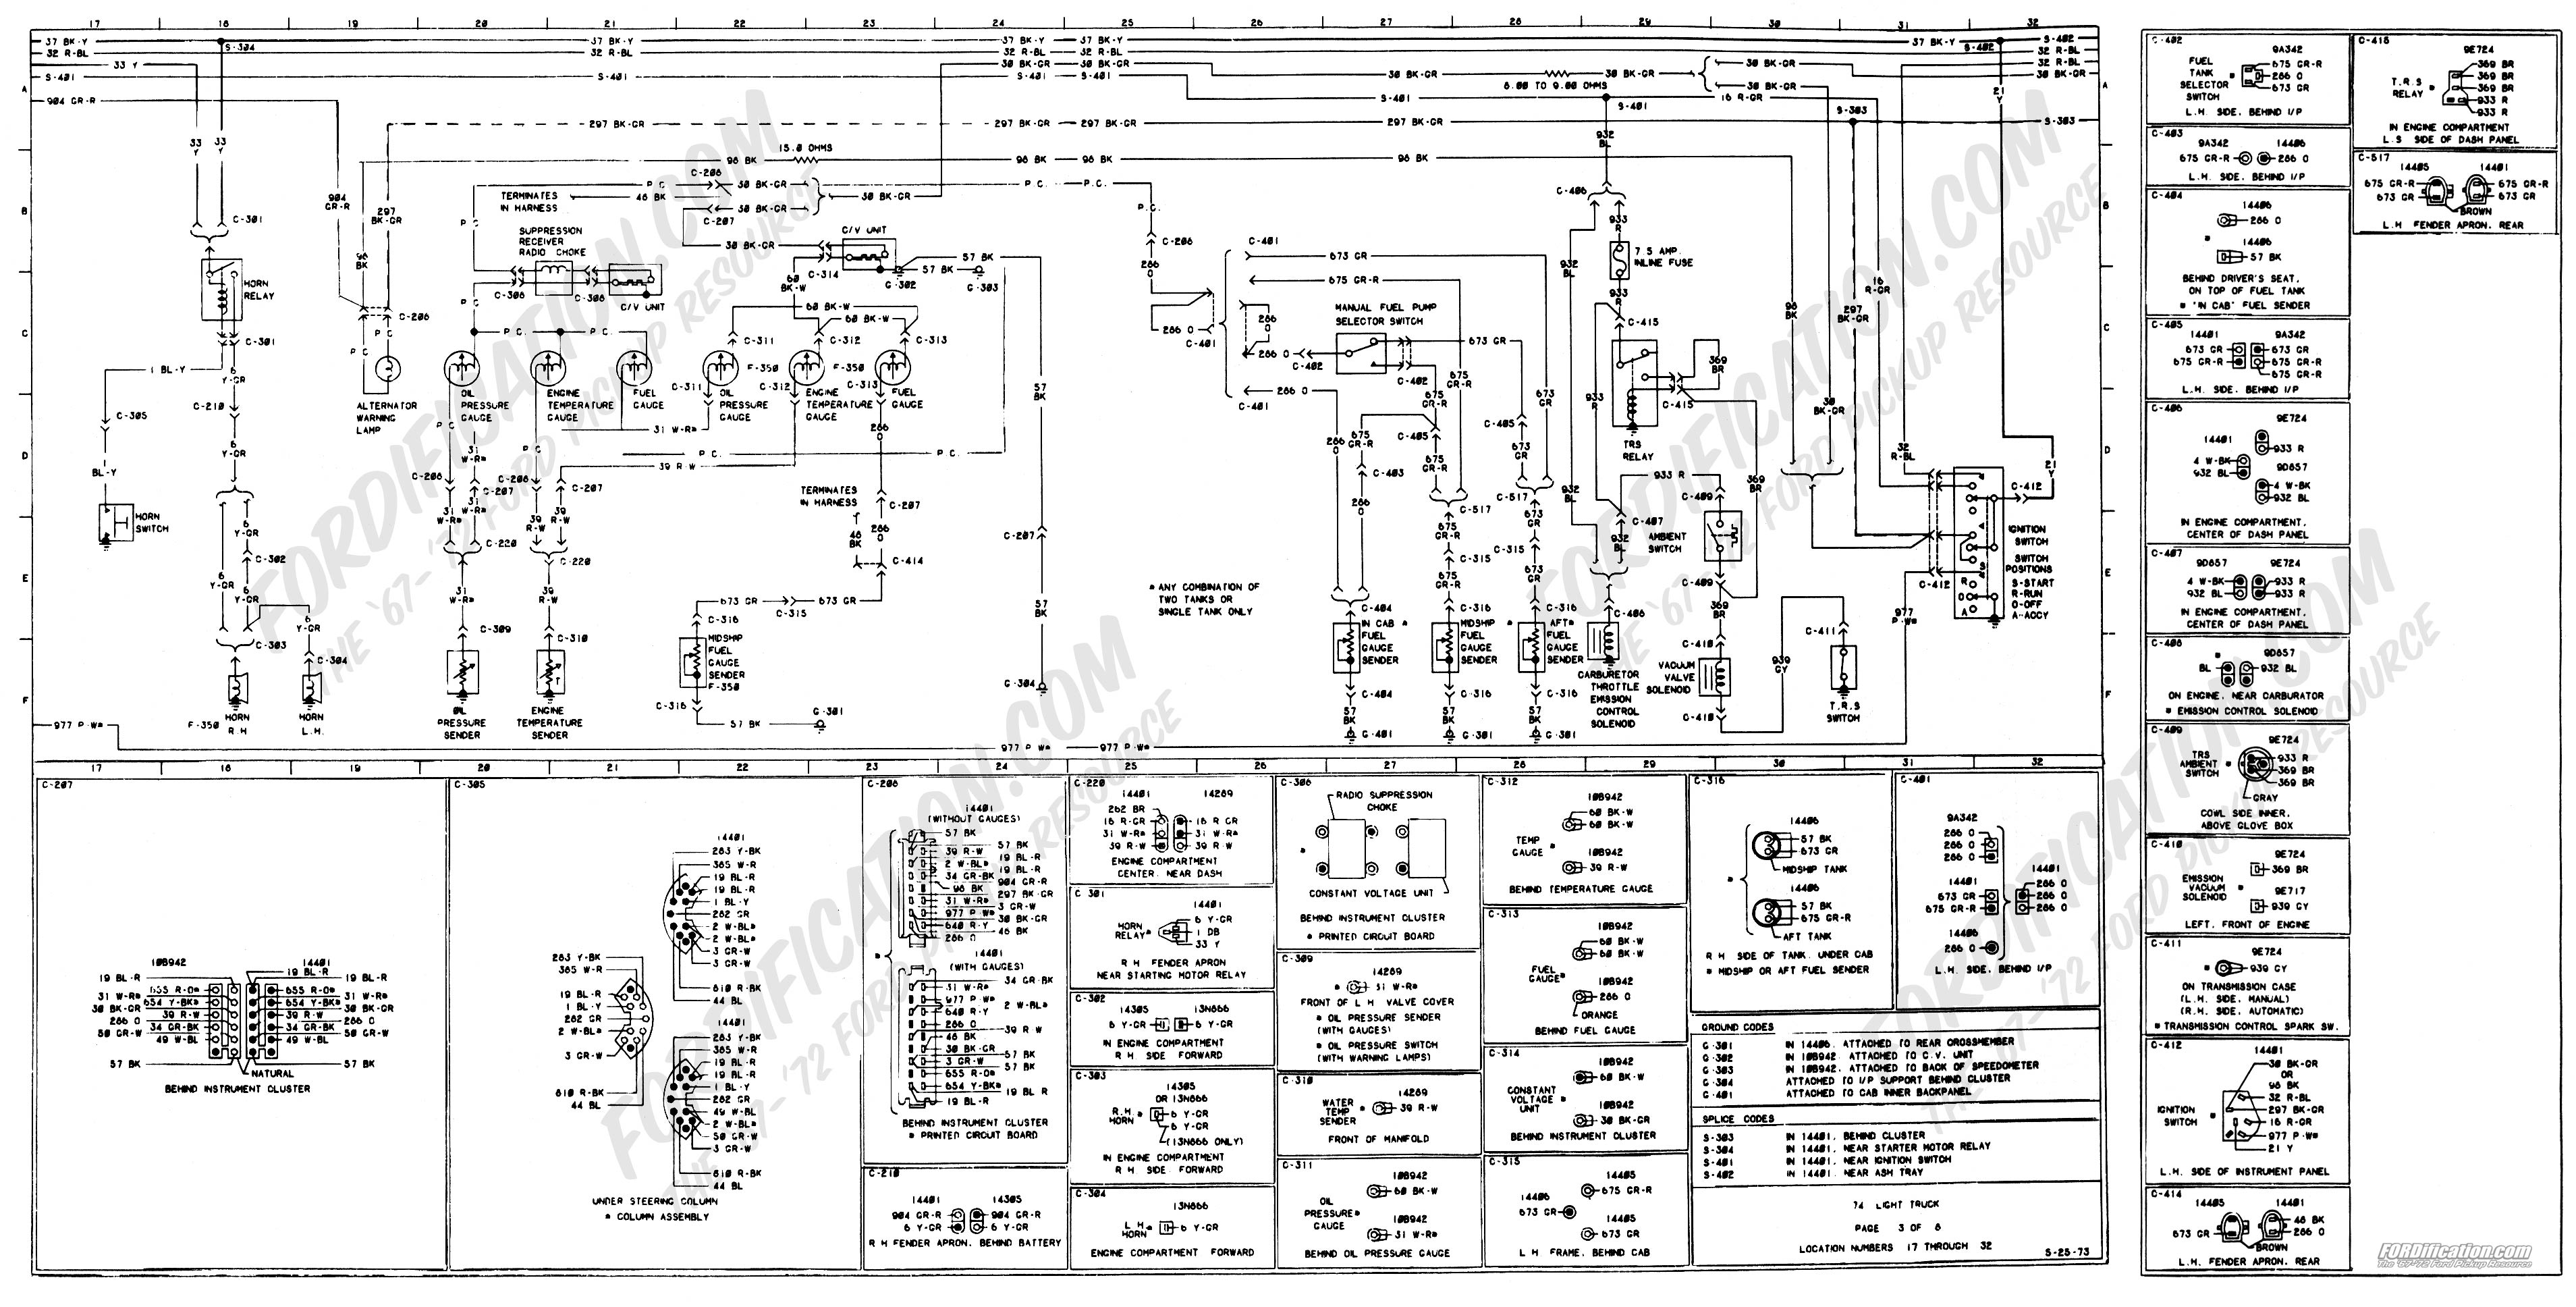 wiring_74master_3of8 1995 ford l9000 wiring schematic ford l9000 fuse \u2022 wiring diagrams 1995 ford f250 wiring diagrams at n-0.co